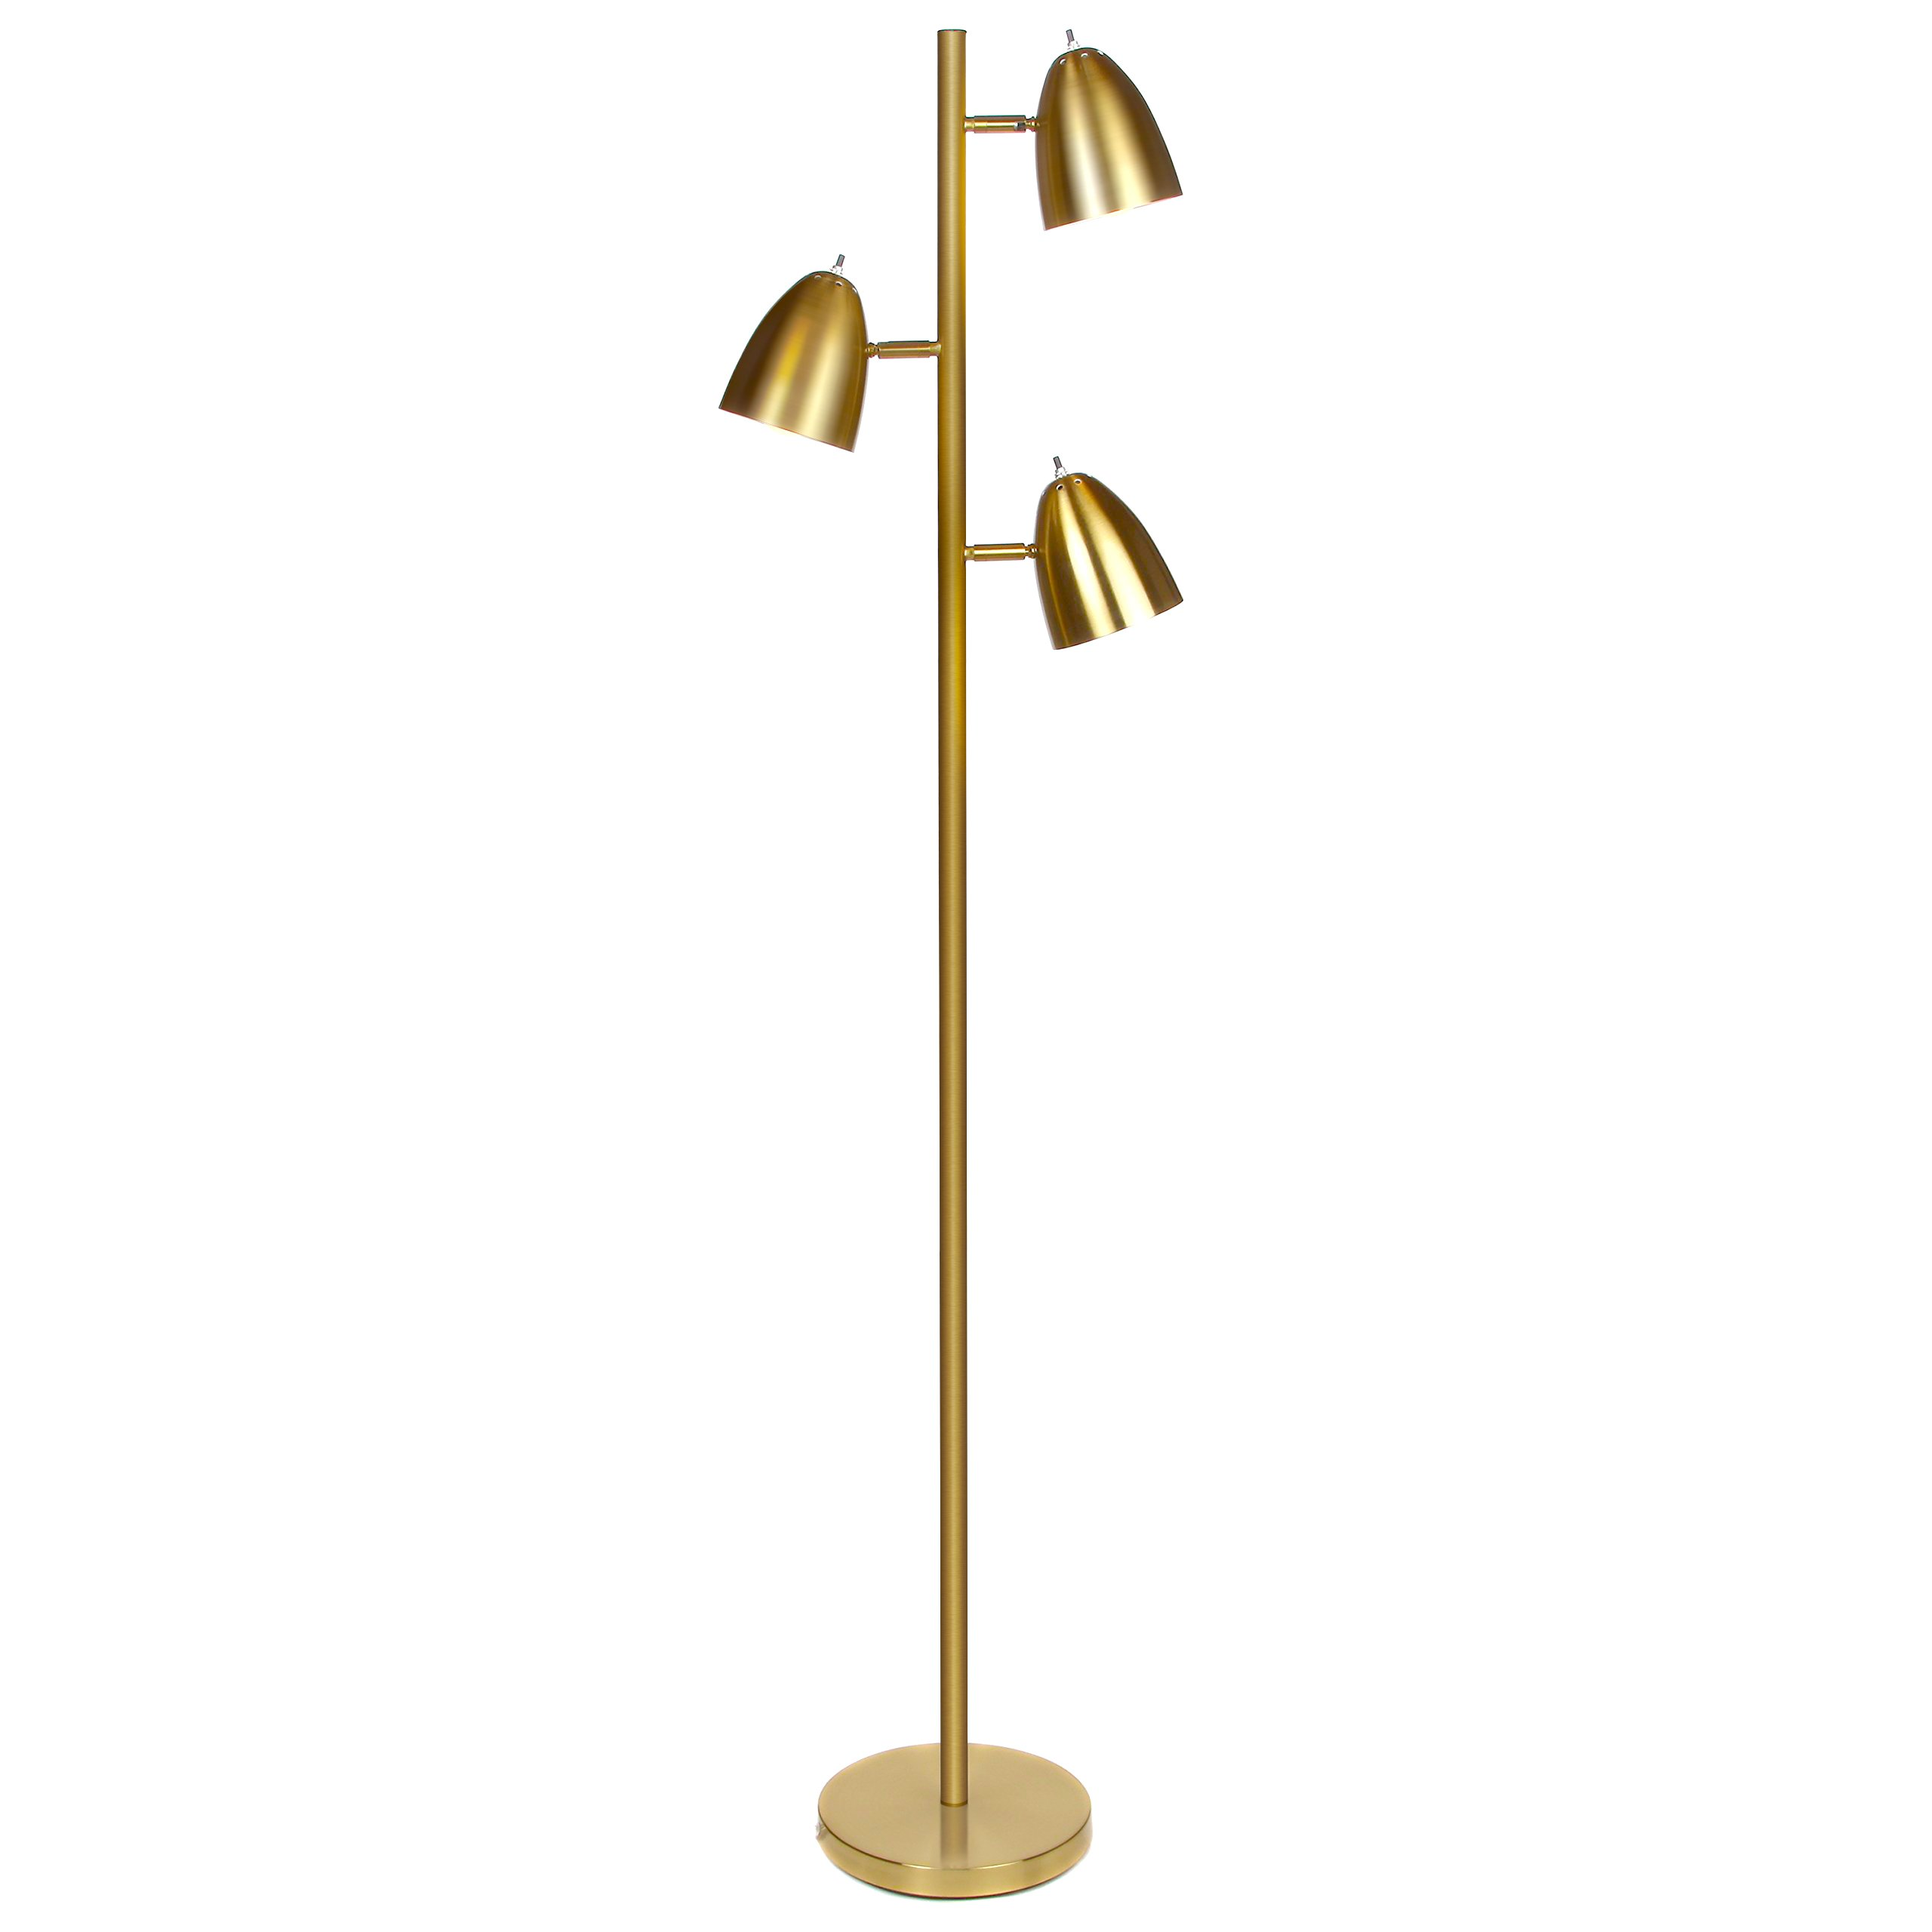 Brightech Jacob LED Reading and Floor Lamp- Classy Modern Standing Industrial 3 Way Tree Lamp – Adjustable Omnidirectional Energy Saving Light for Living Room Office Dorm Bedroom- Antique Brass